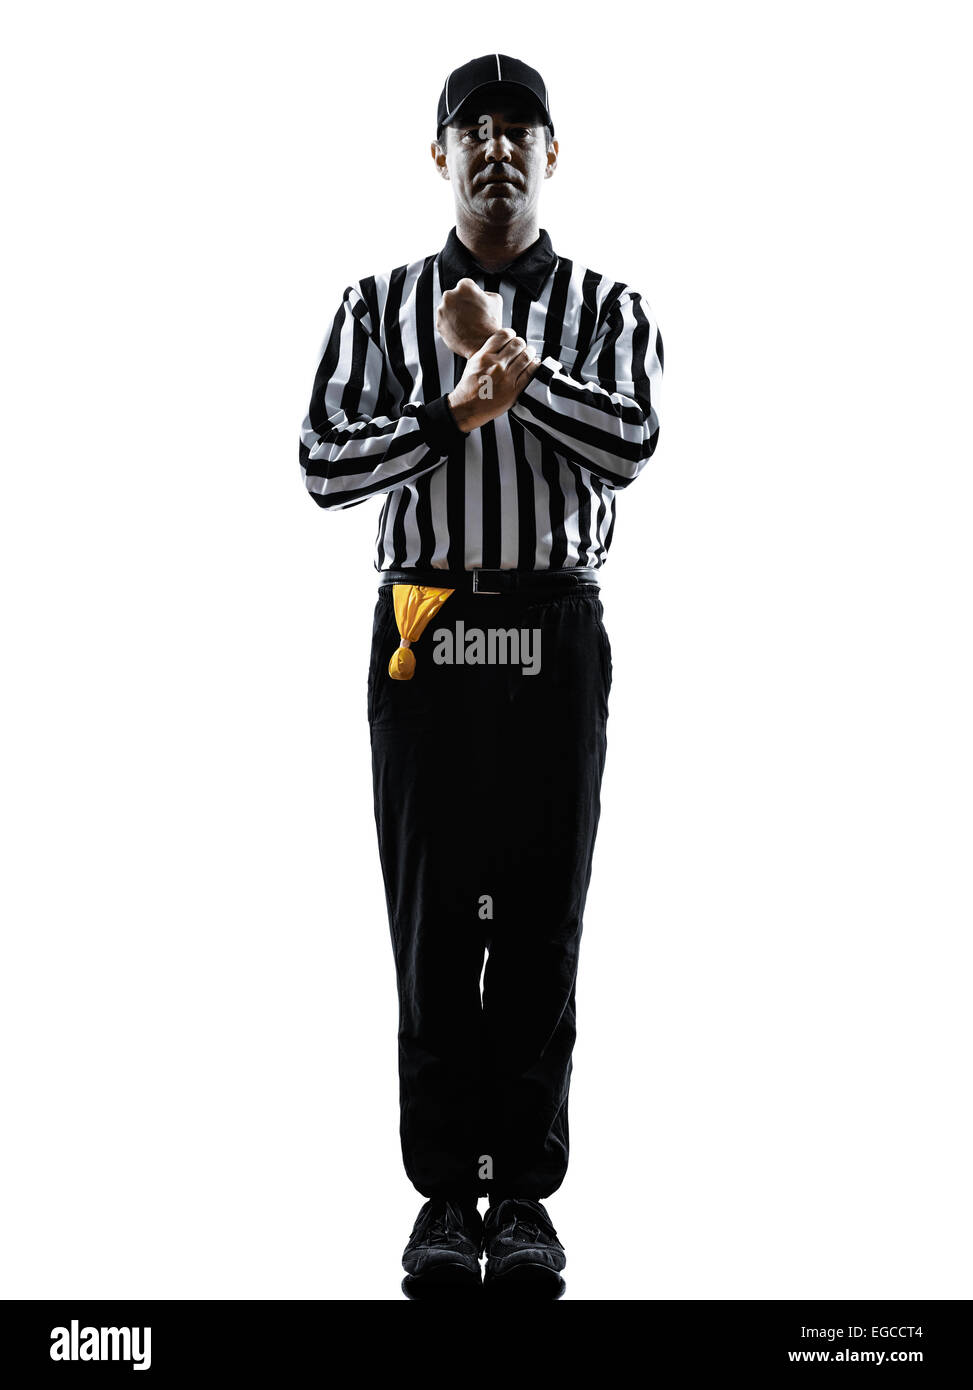 american football referee gestures holding in silhouette on white background - Stock Image